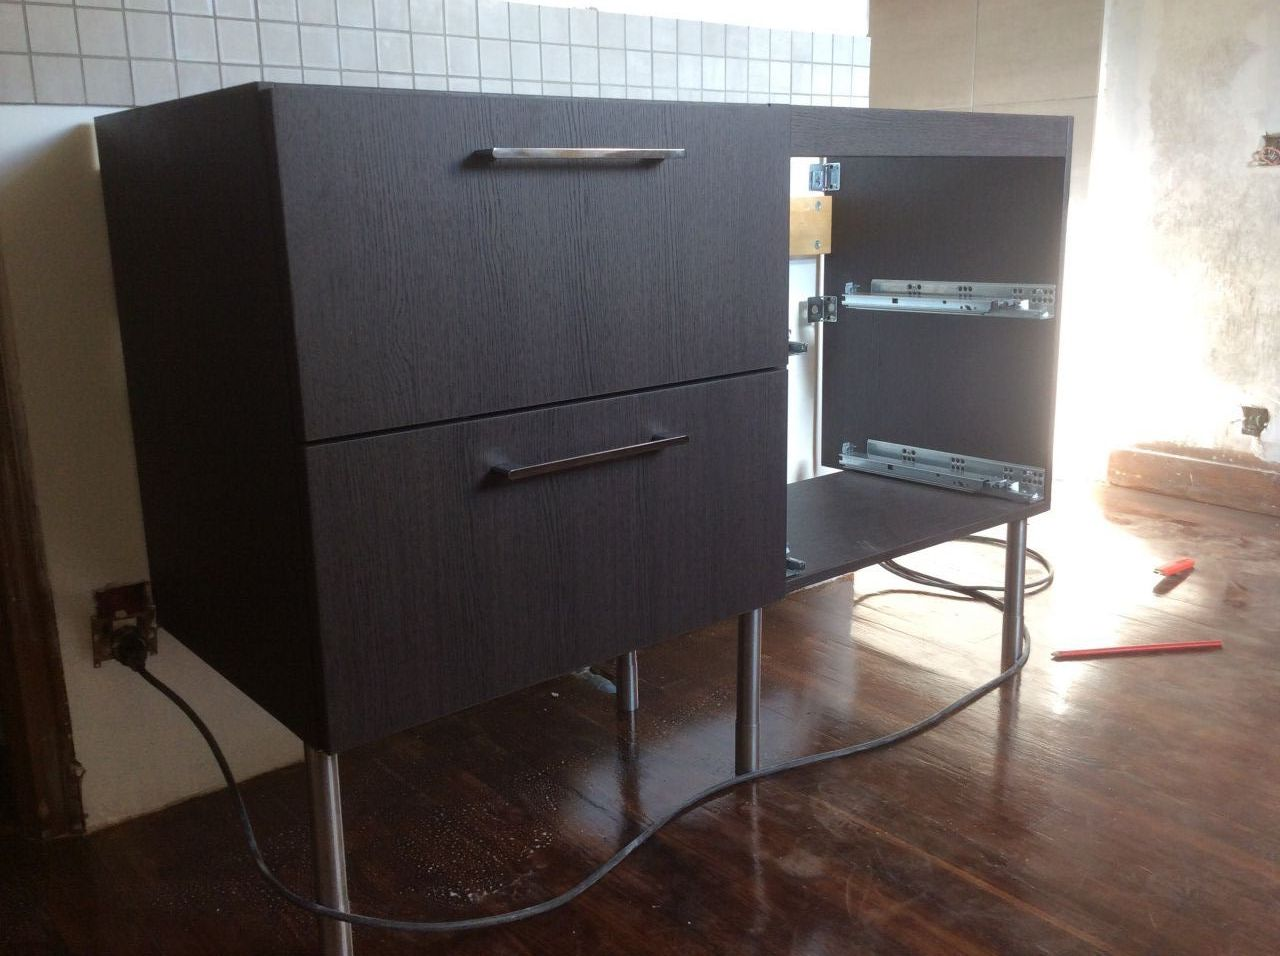 meubles sous lavabo ikea affordable superb meuble lave main ikea with meubles sous lavabo ikea. Black Bedroom Furniture Sets. Home Design Ideas